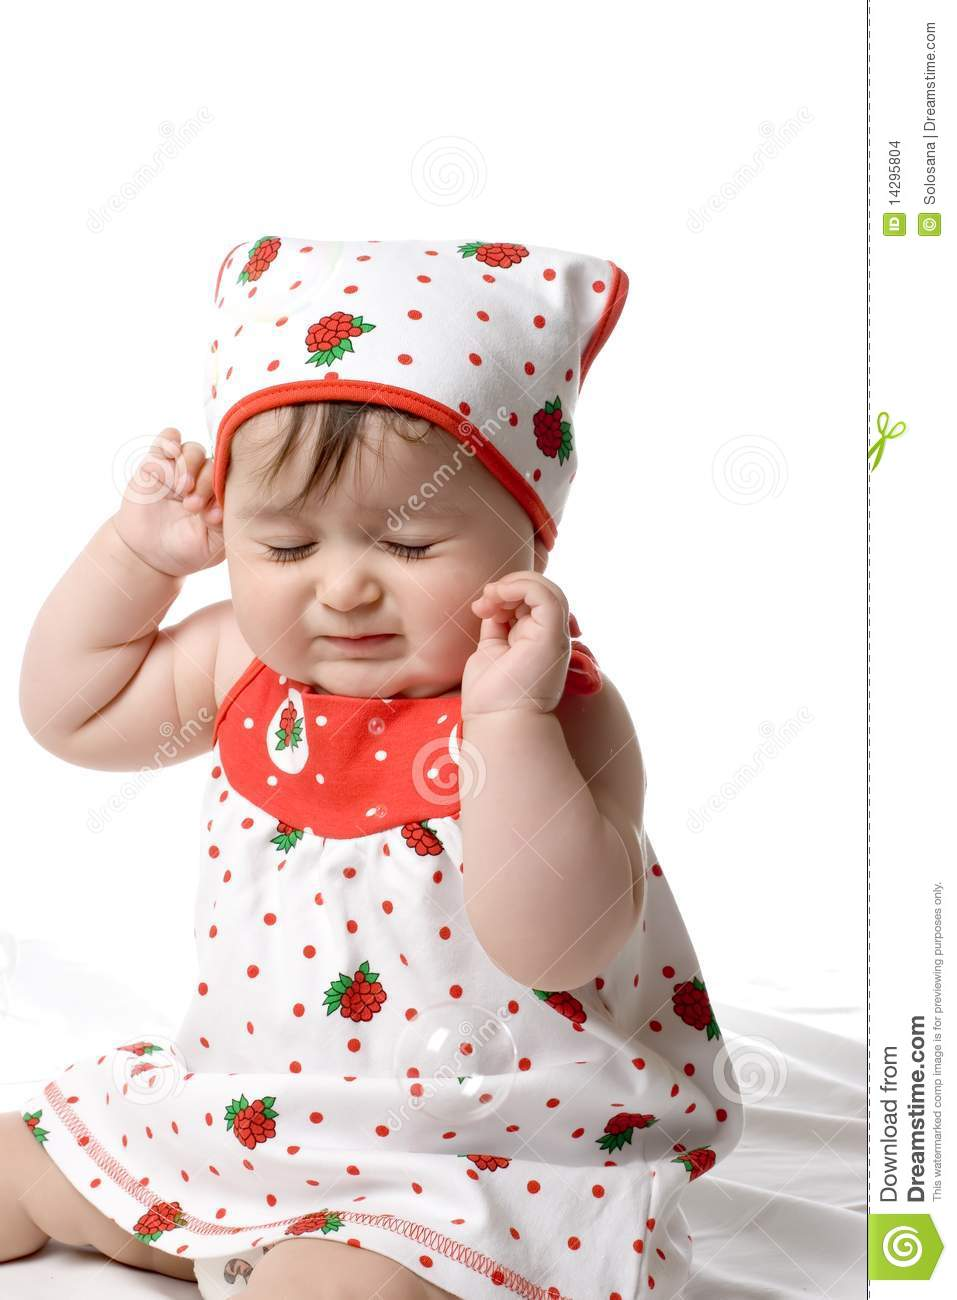 Baby Closing Her Eyes Tight Stock Images - Image: 14295804